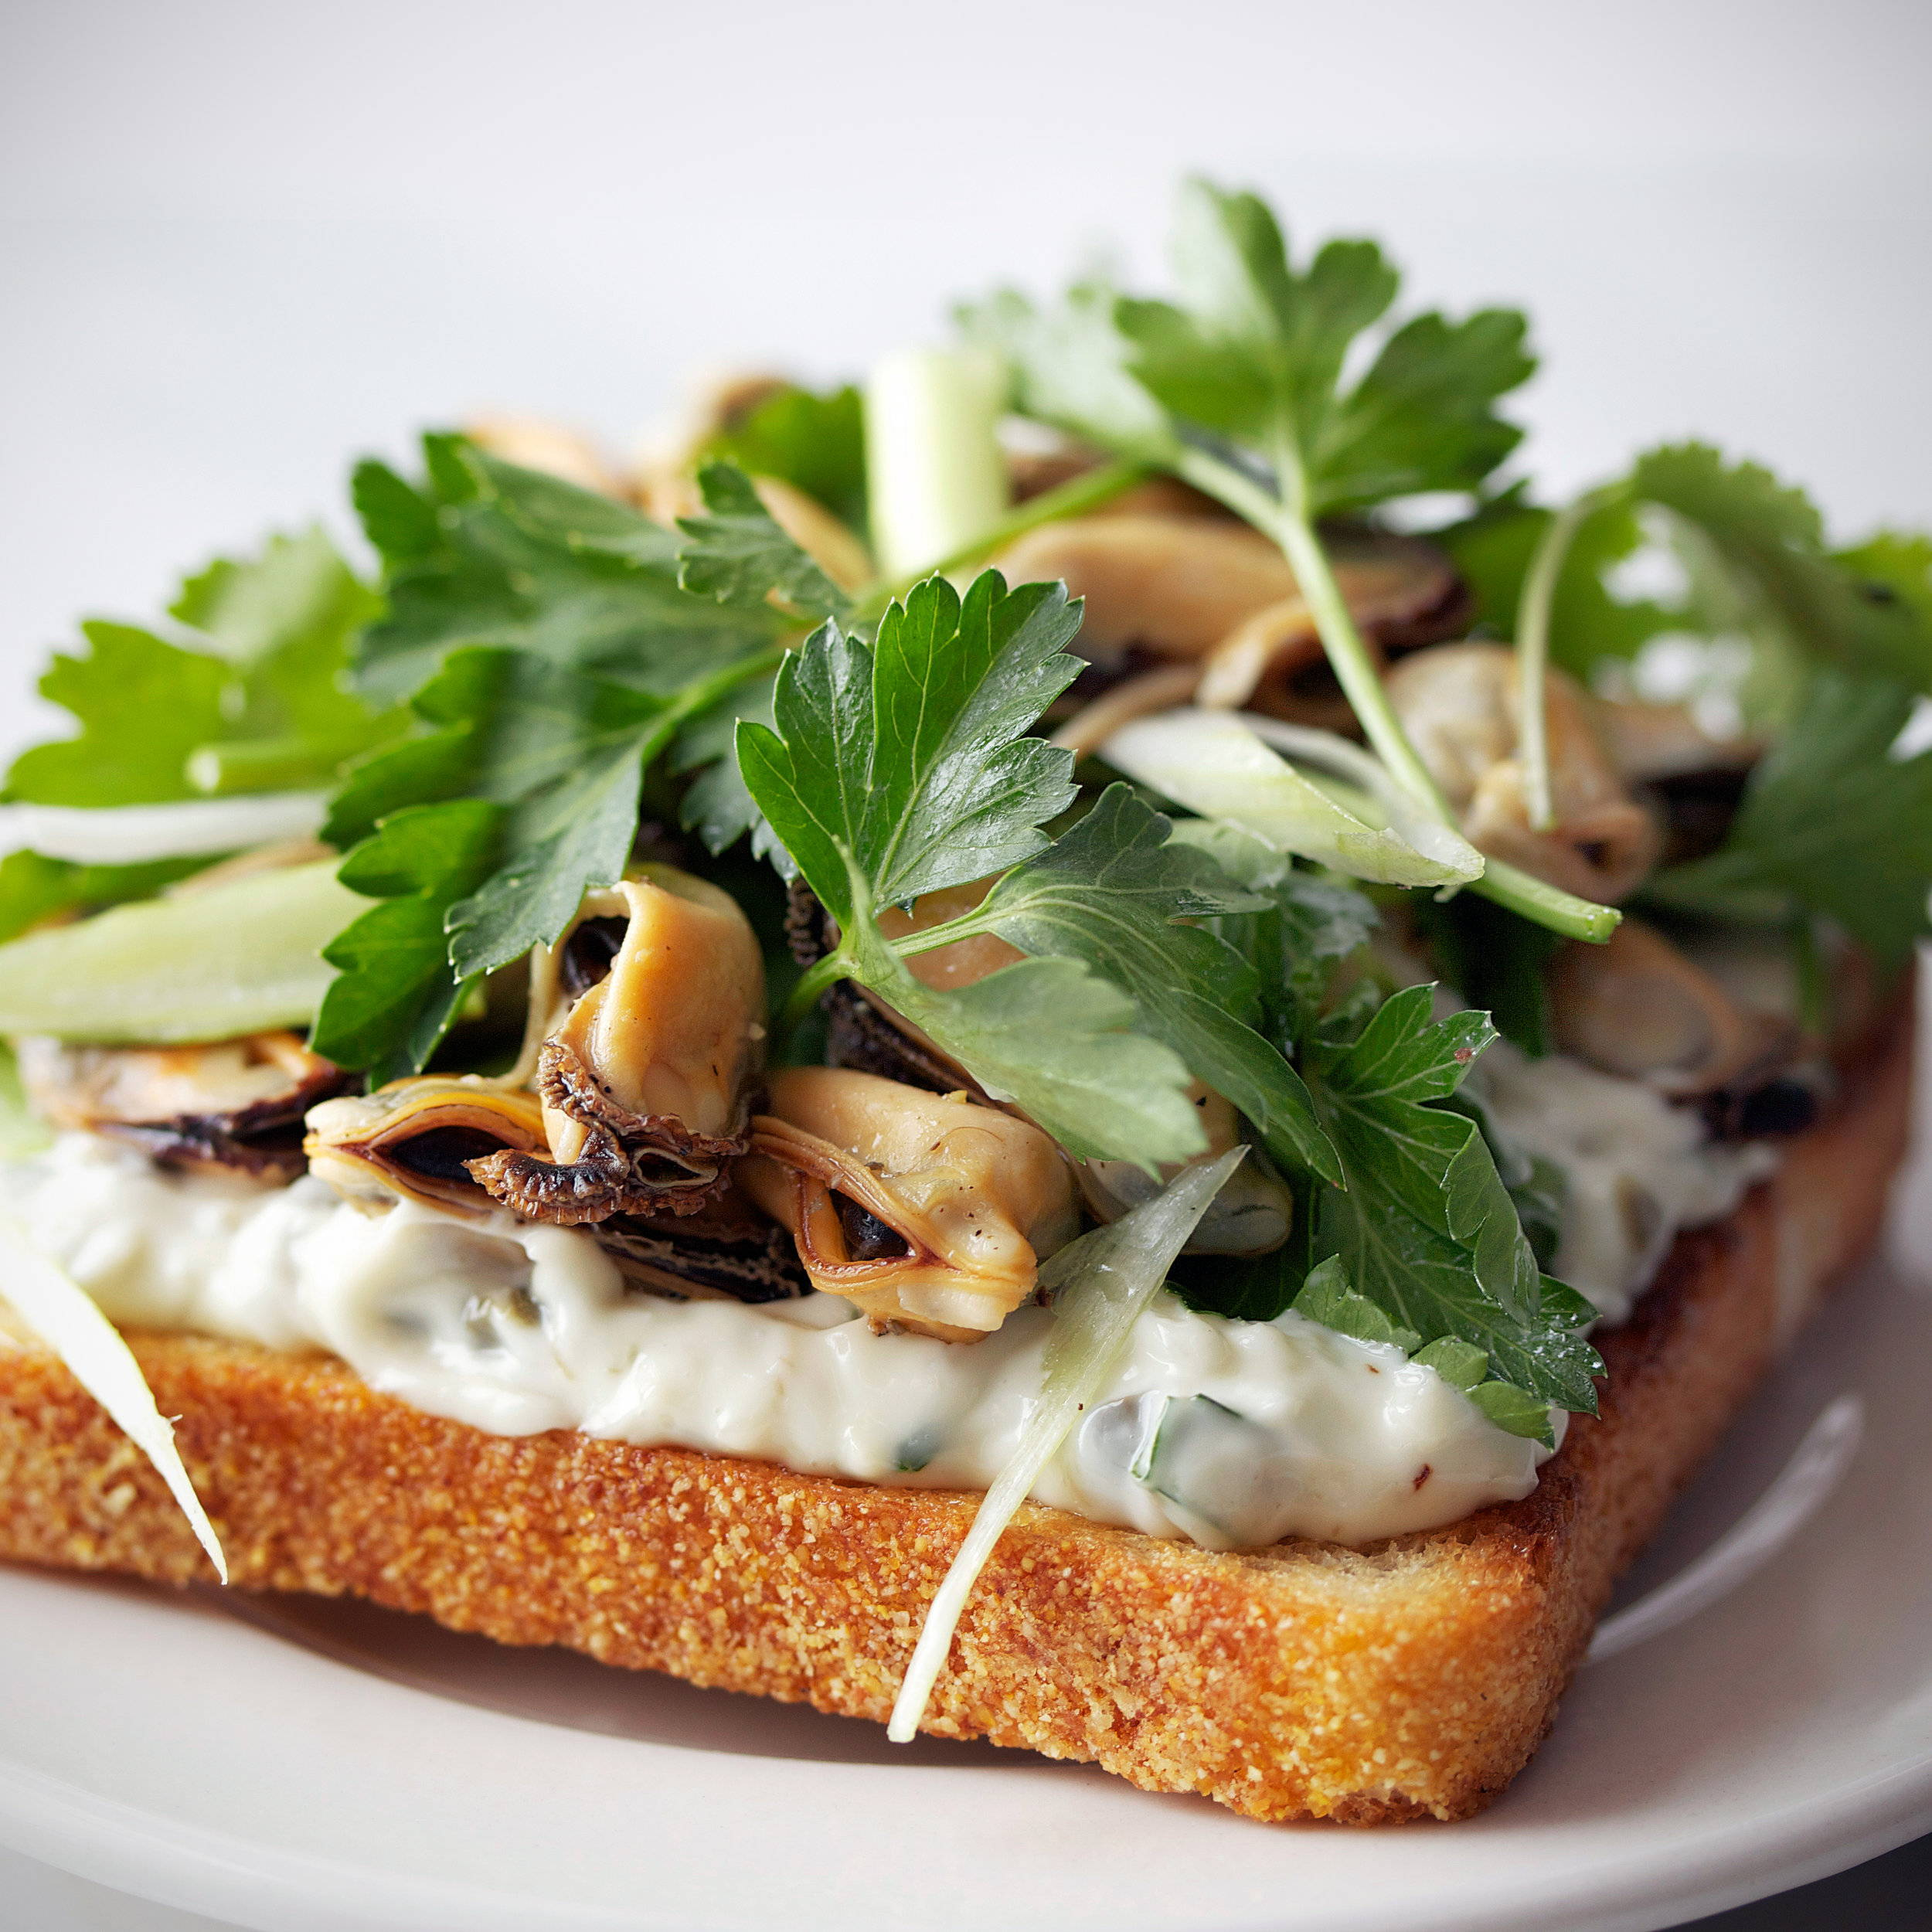 Herb infused butter on a delicious sandwich